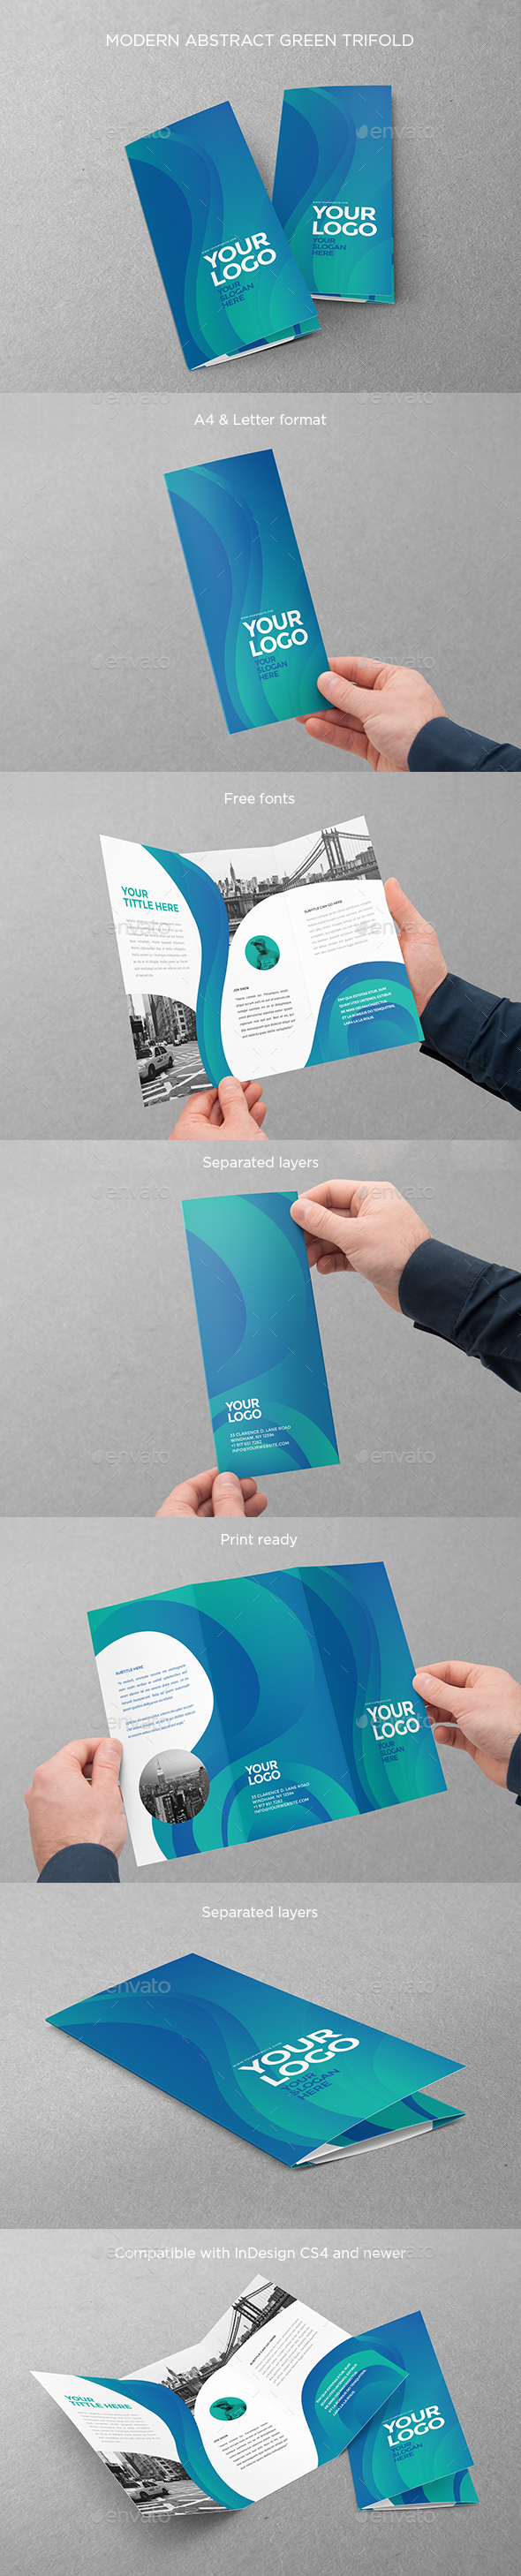 Modern Abstract Green Trifold - Brochures Print Templates